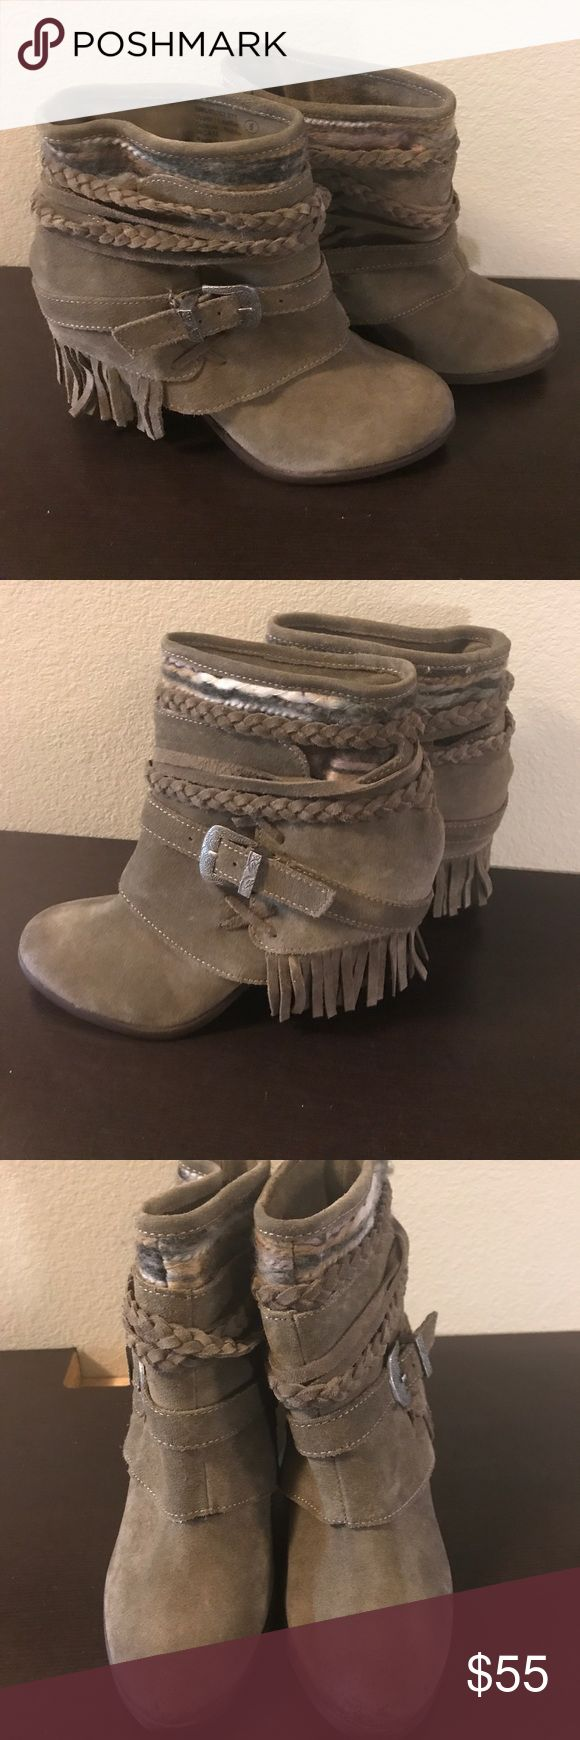 Naughty monkey boots size 6 Store display never used by me only a nordstrom store display size 6 naughty monkey Shoes Heeled Boots